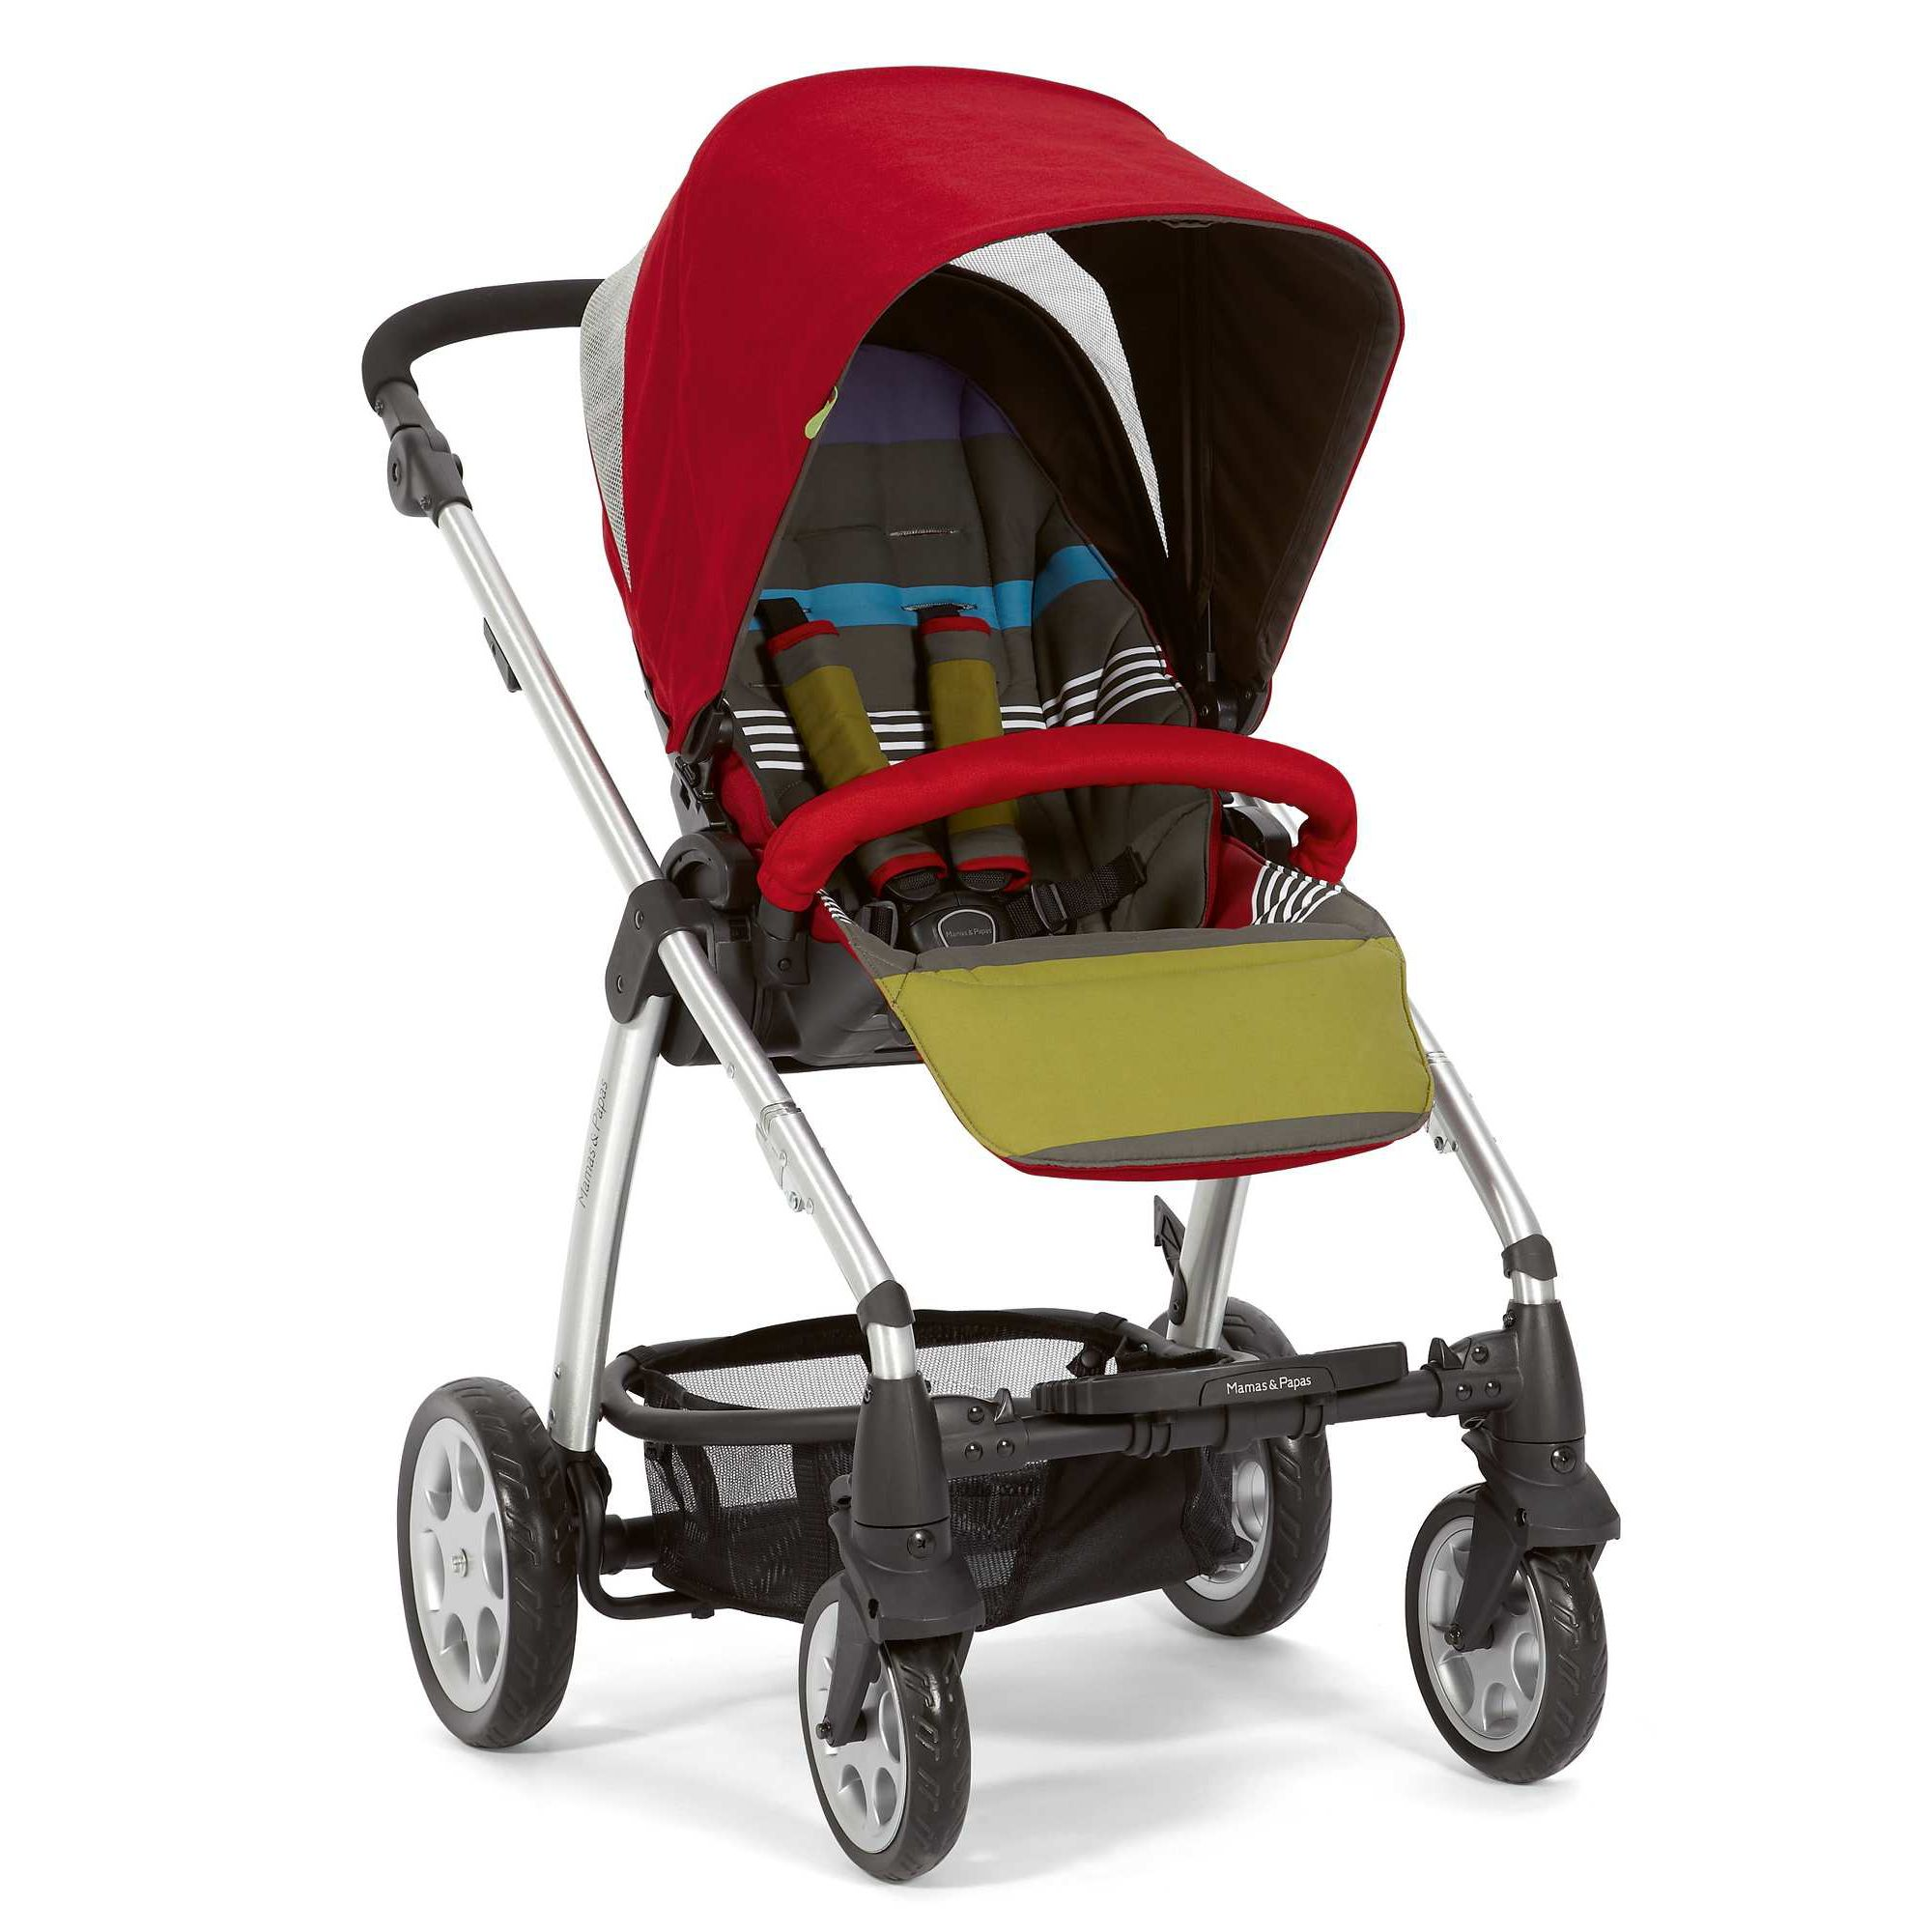 Mamas & Papas - Sola 2 in 1 - Red at Tesco Direct